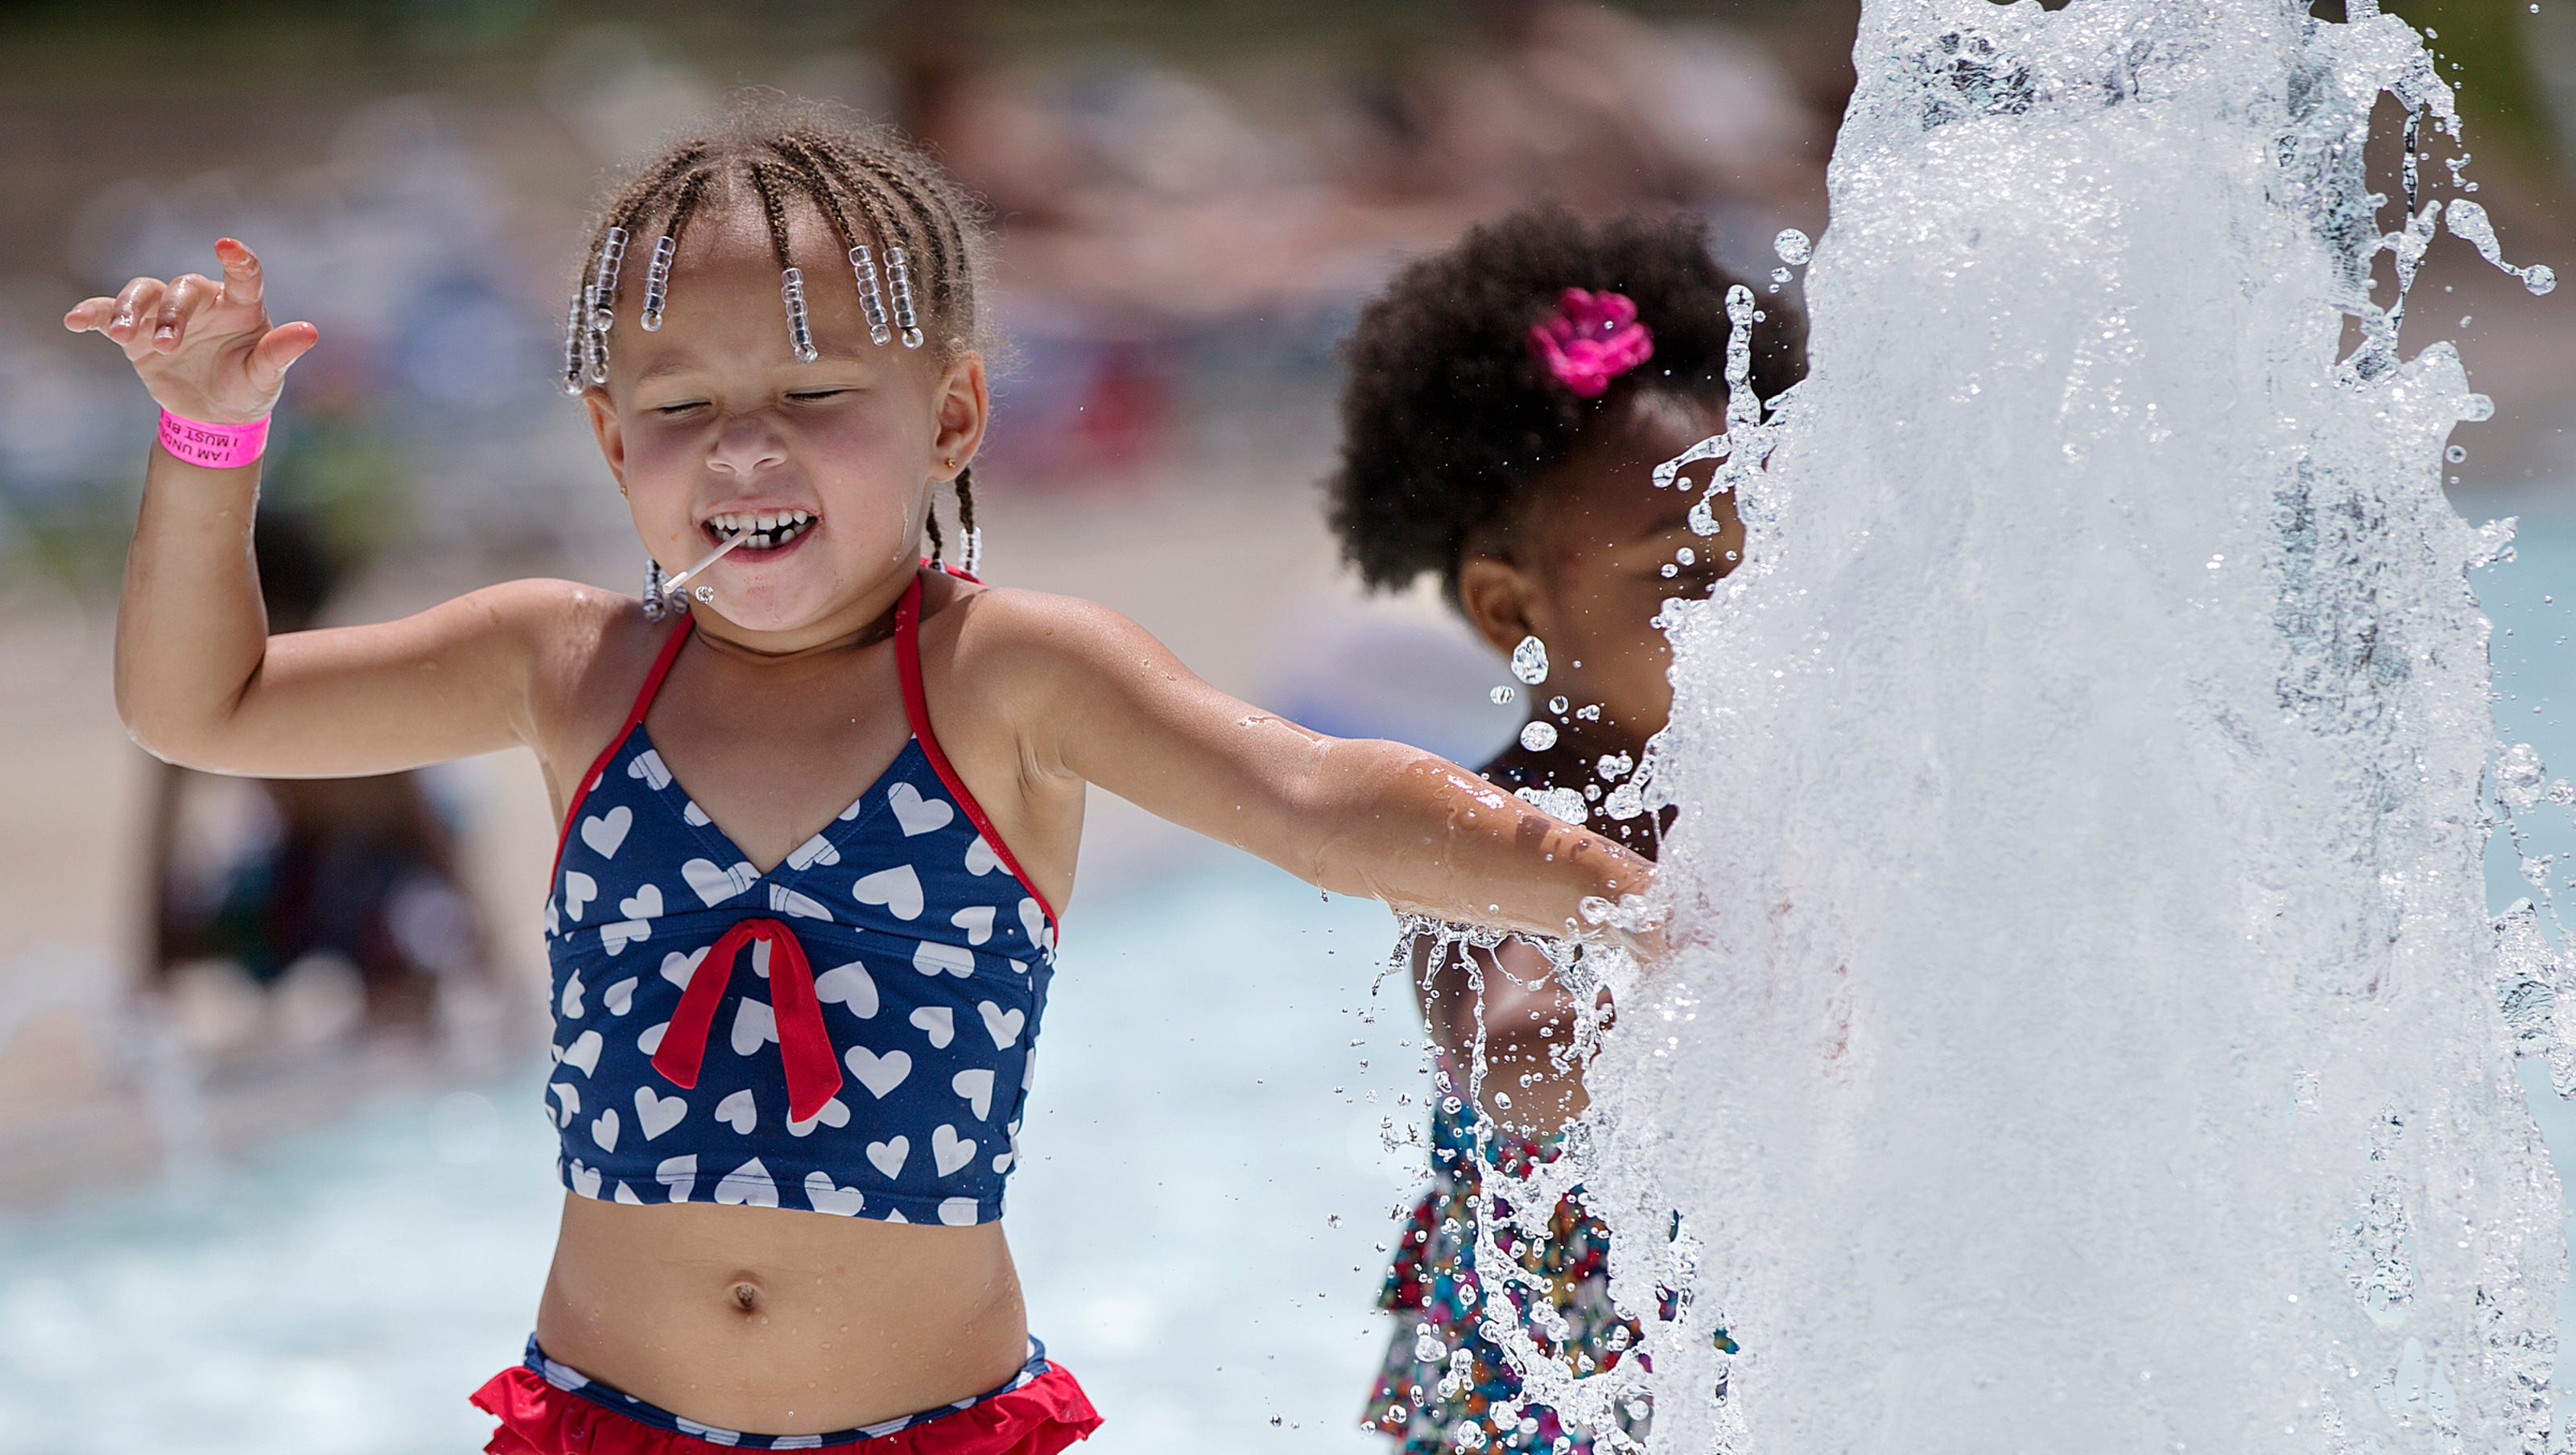 More Warm Weather Expected In Indy This August